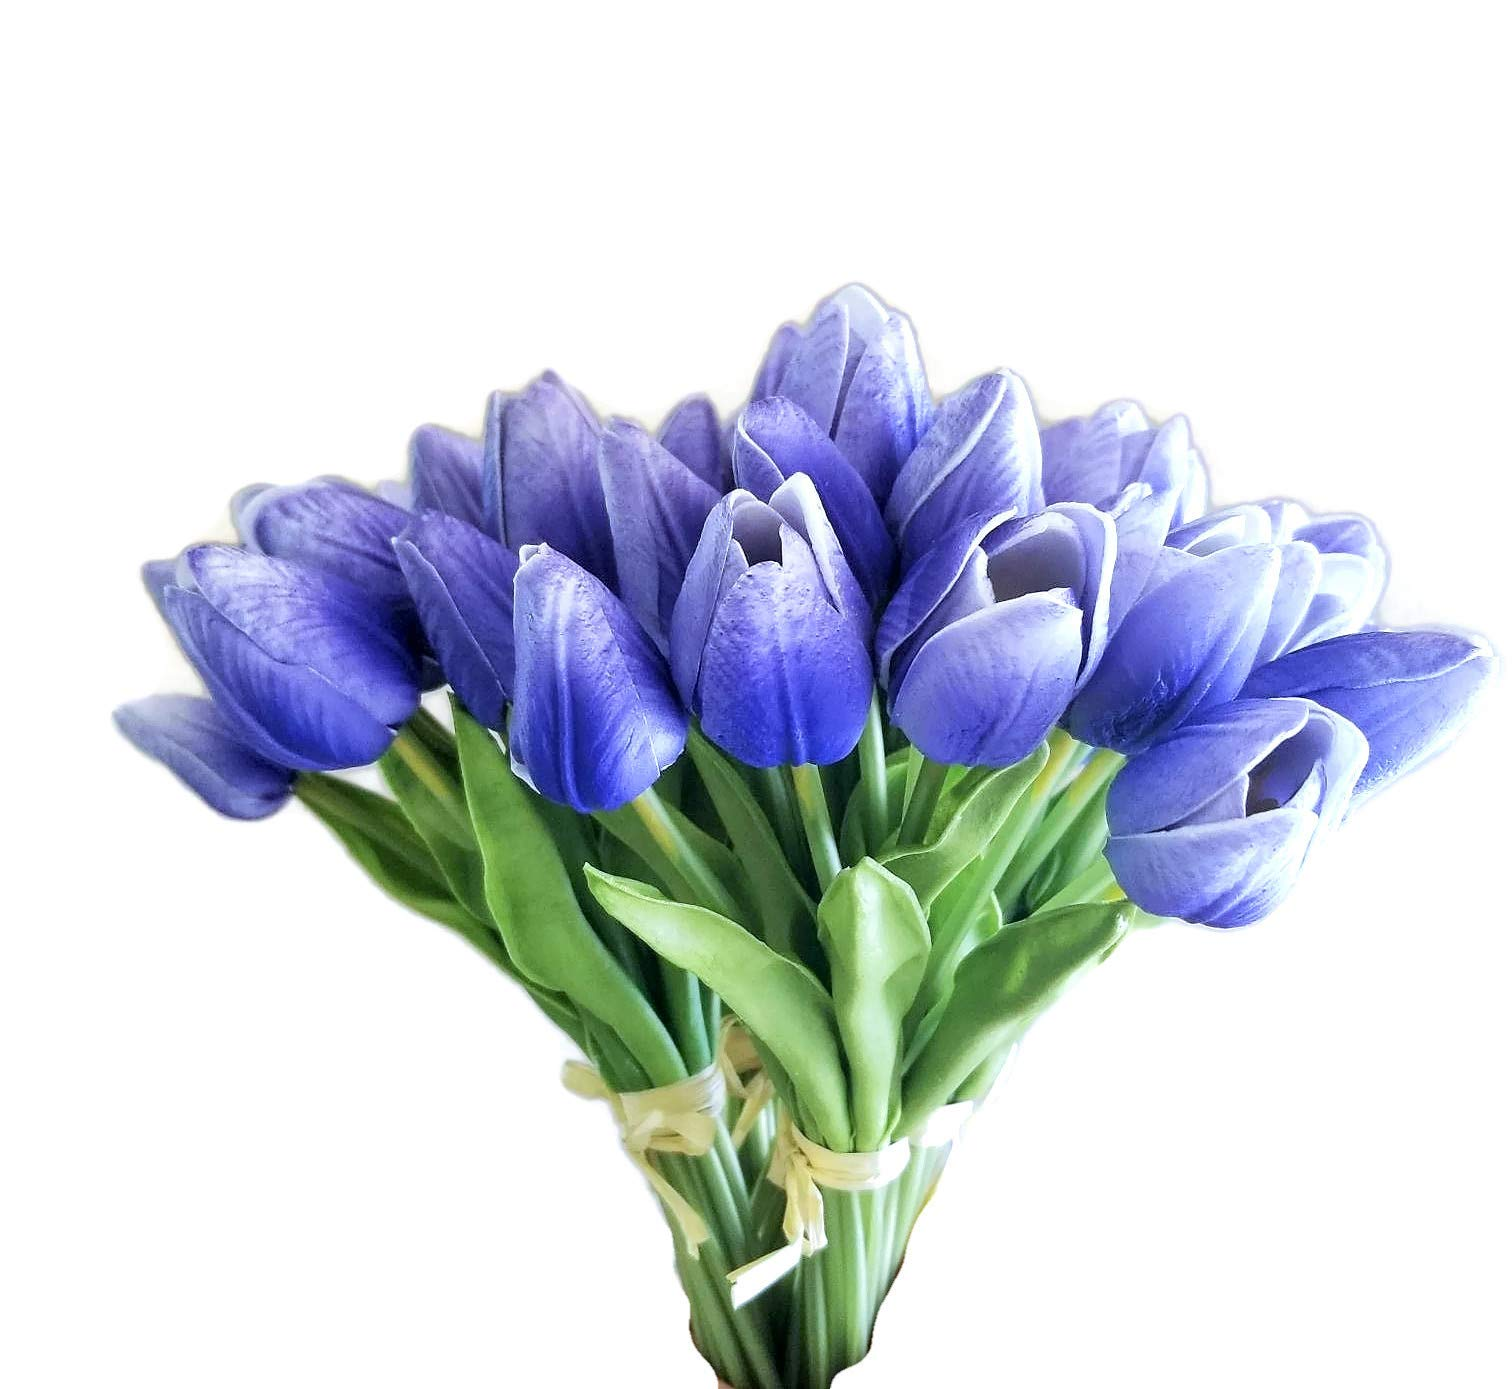 Meide-Group-USA-10-Real-Touch-Mini-Tulips-Spring-Flowers-for-Home-Decor-Wedding-Bouquets-and-centerpieces-24-PCS